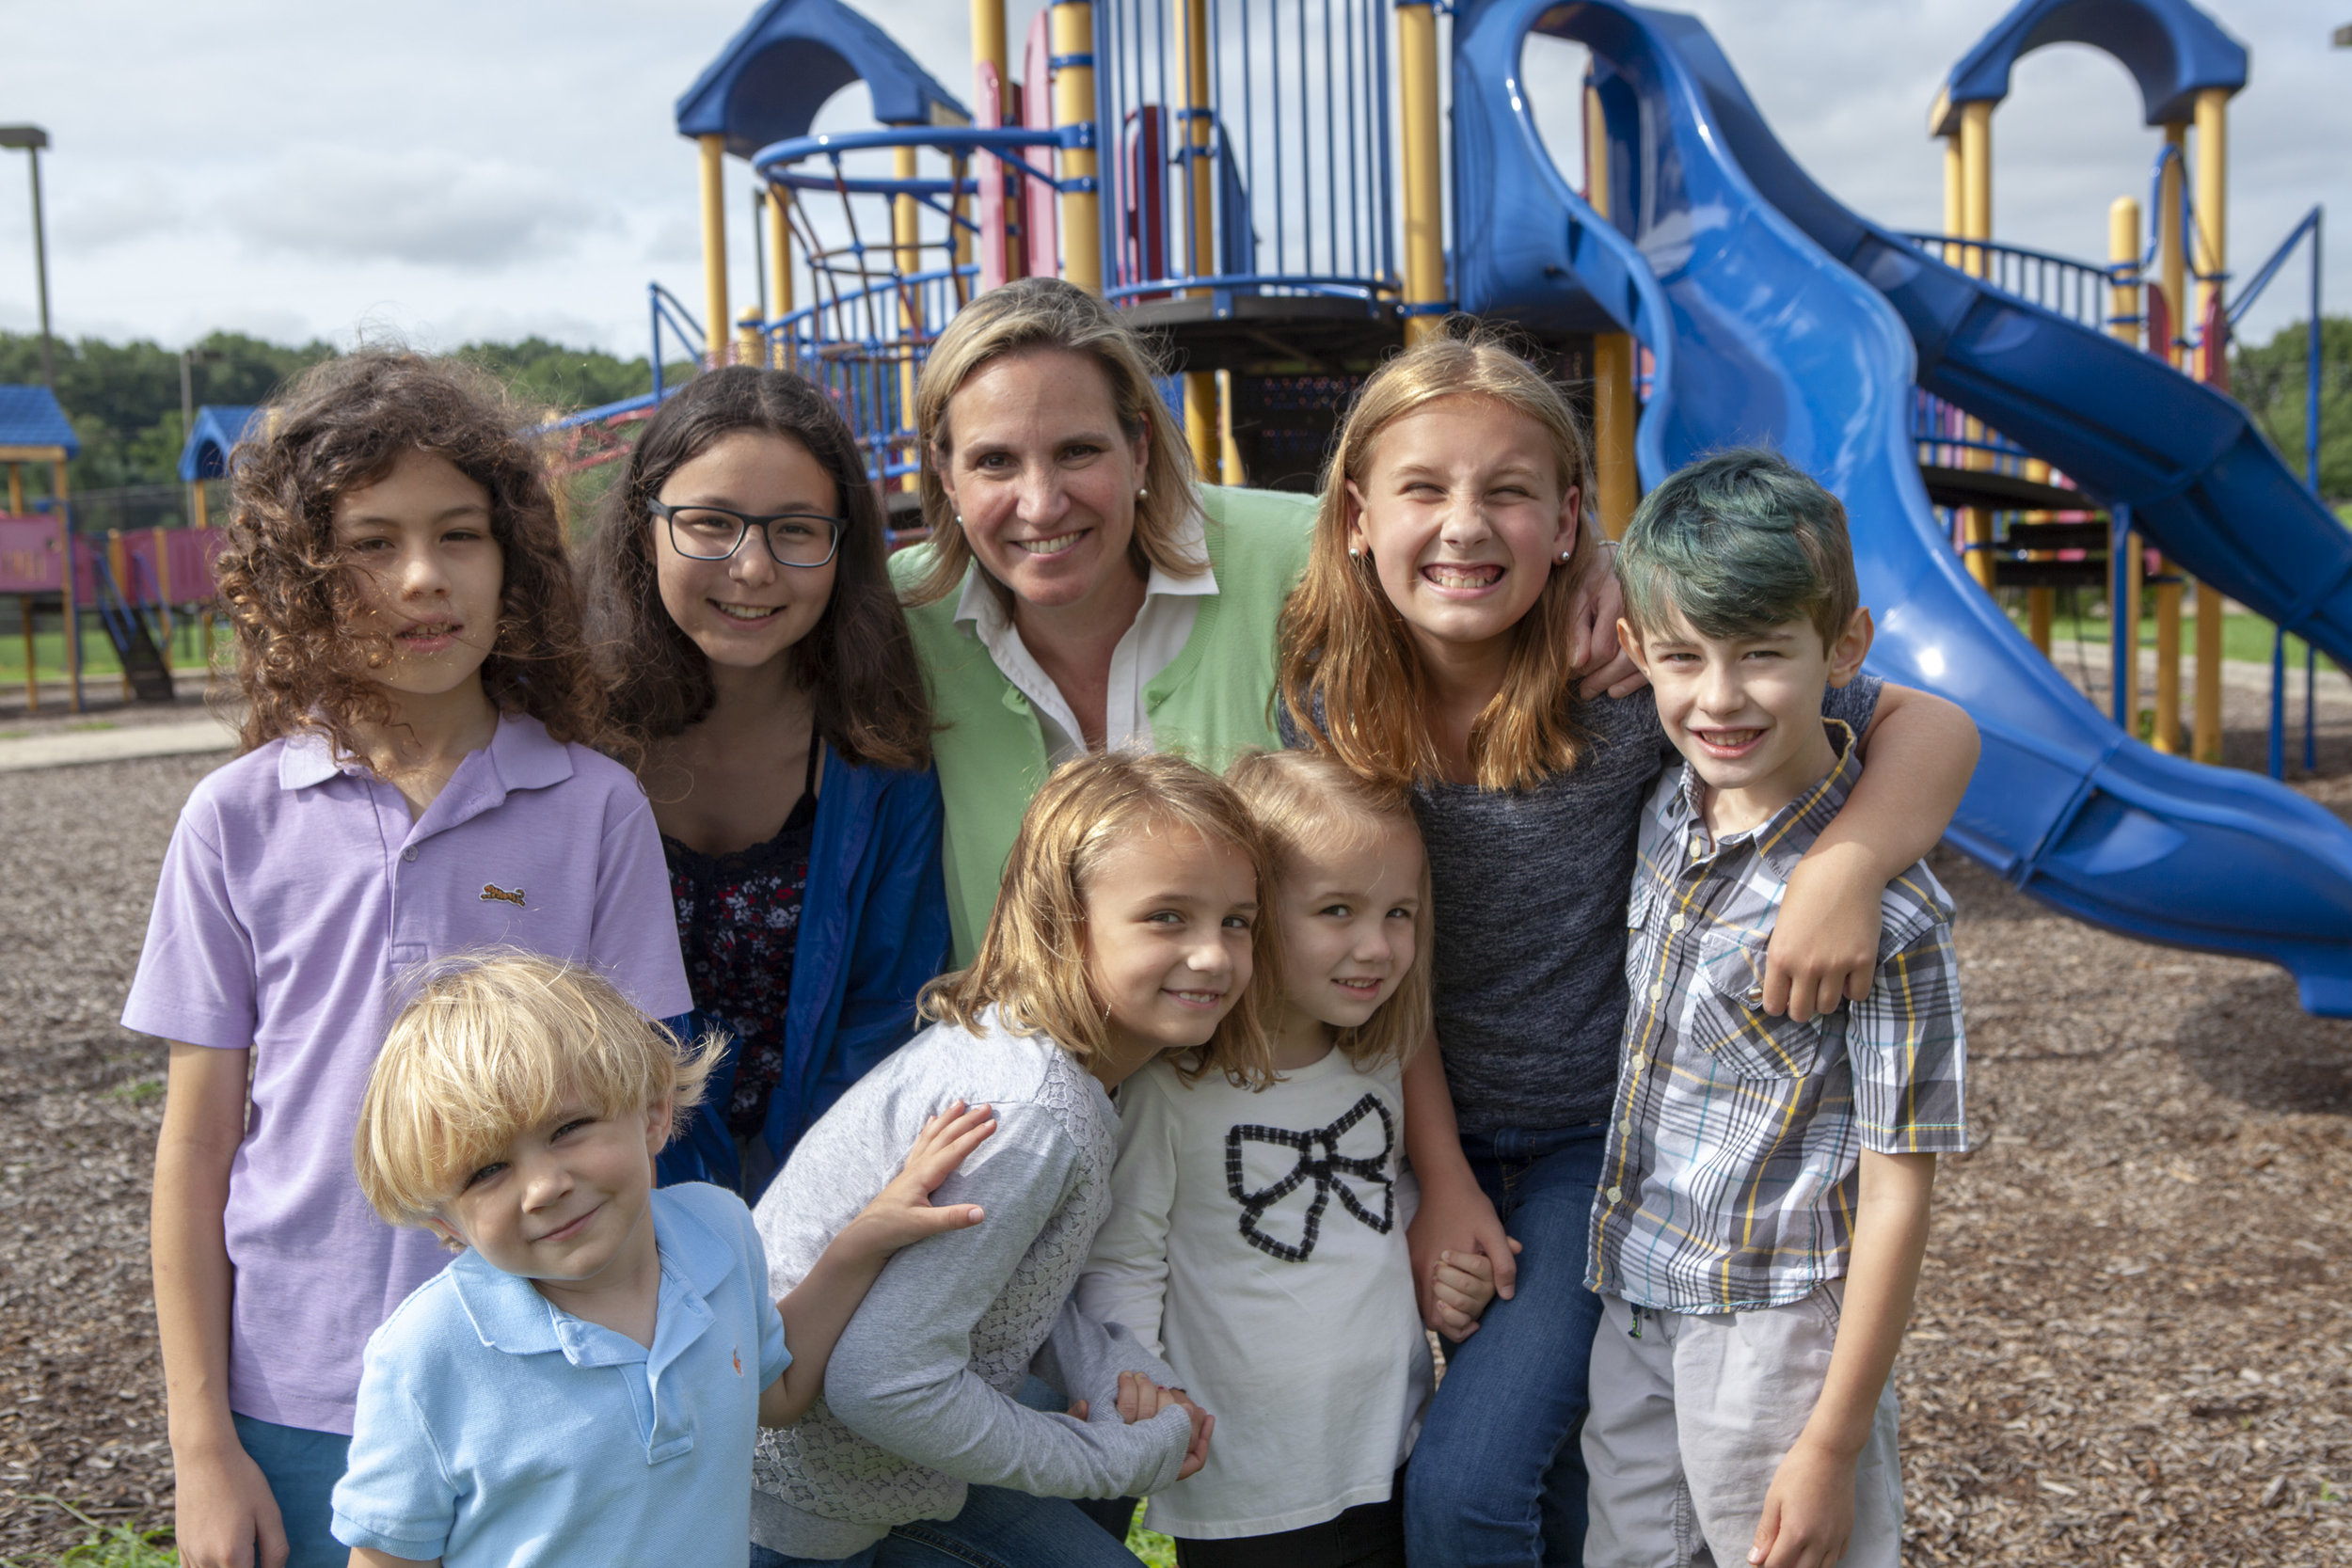 Vibrant public schools, built with committed and caring teachers, determine our future. -